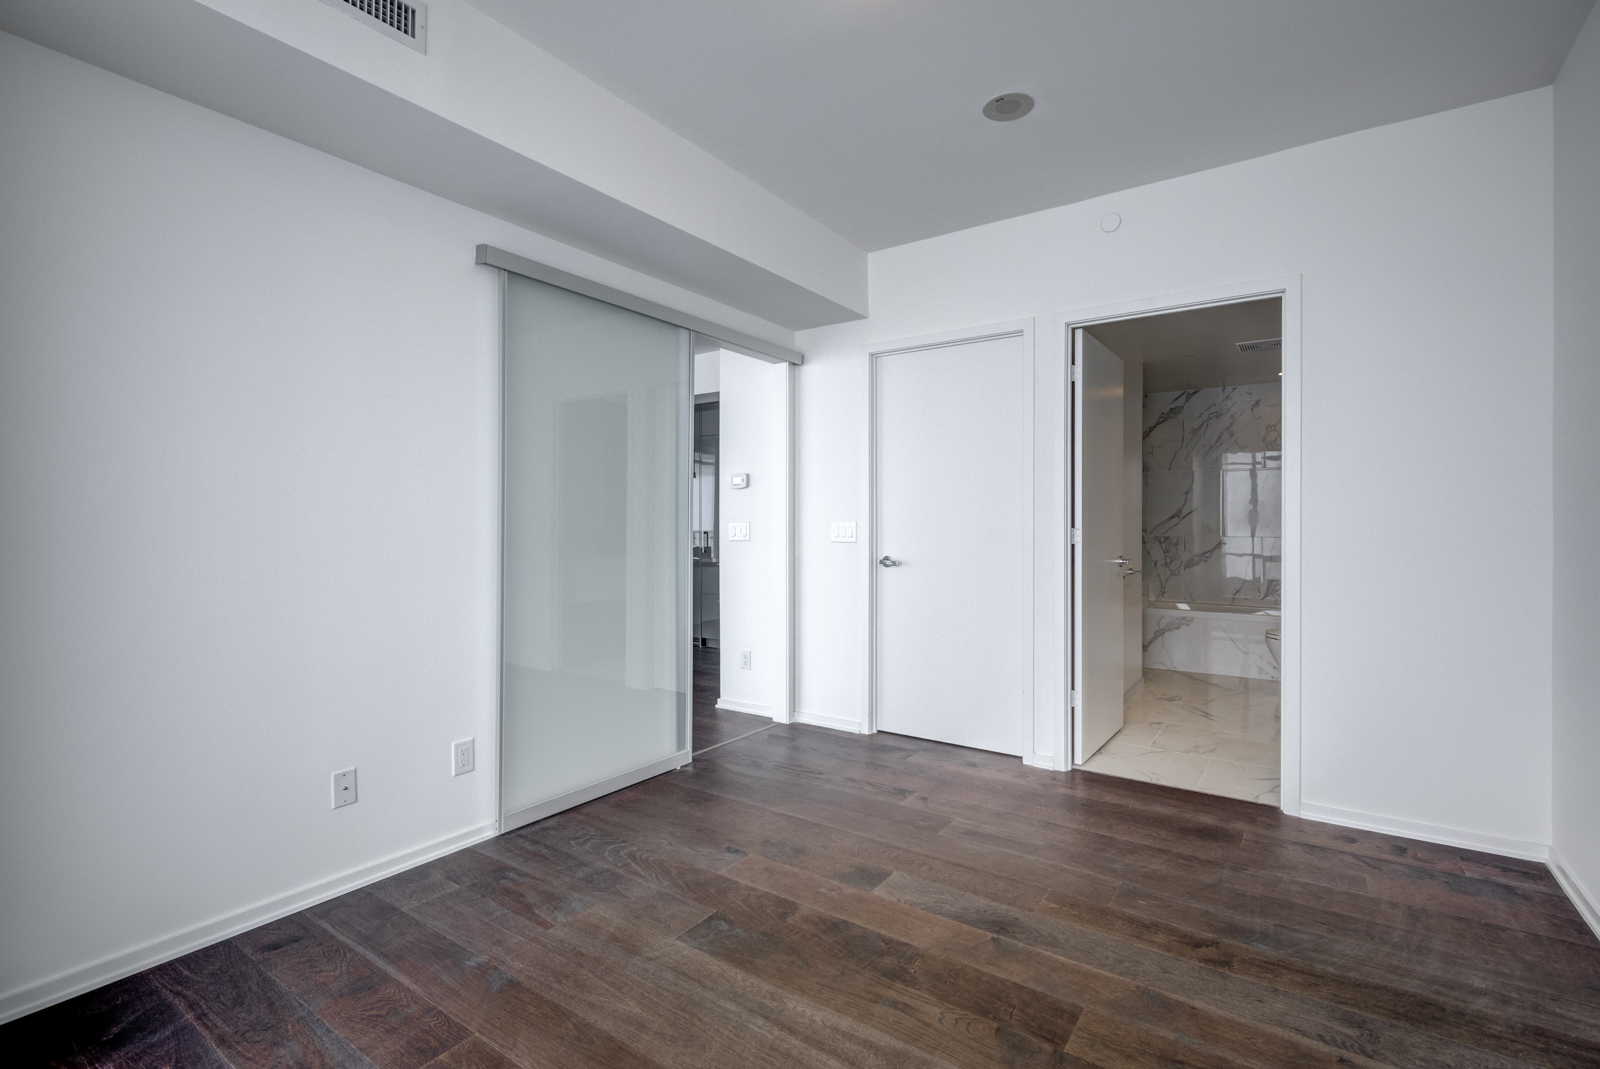 Sliding doors connect the master bedroom to the living and dining areas.